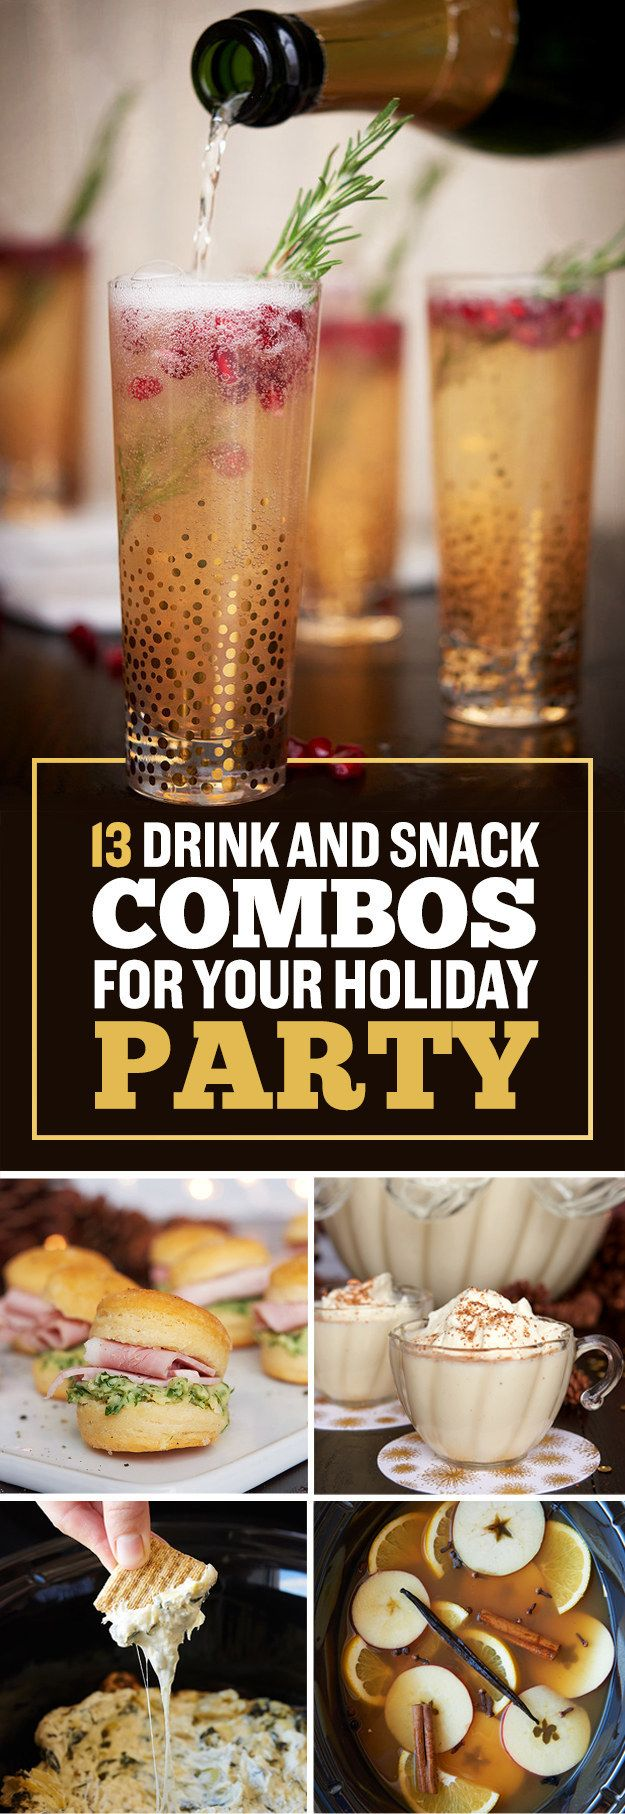 26 Delicious Things To Serve At Your Holiday Party | Pinterest ...